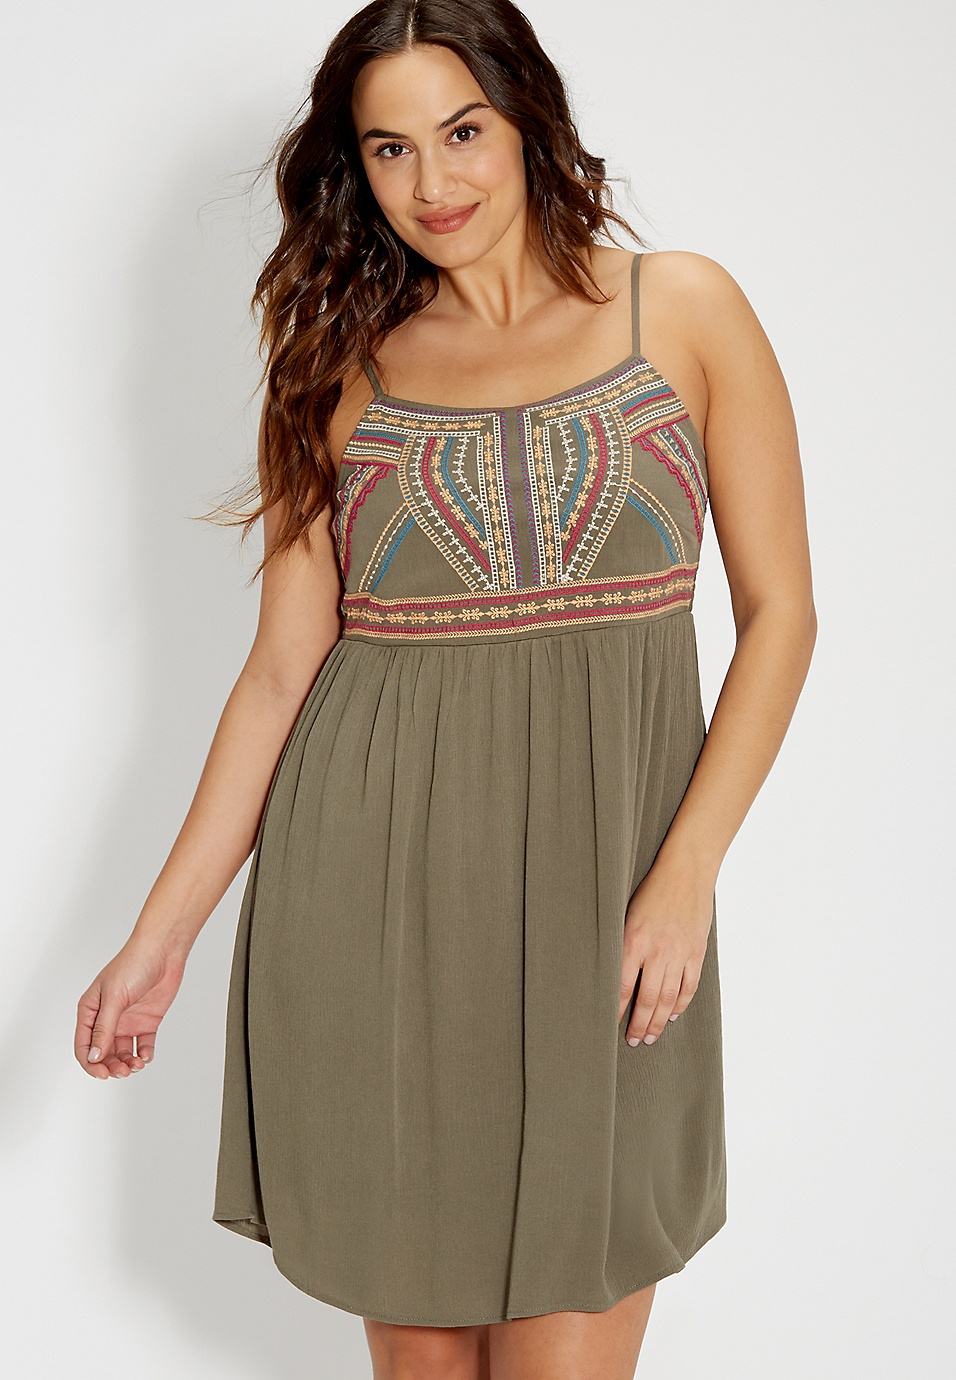 plus size olive green dress with embroidery | maurices